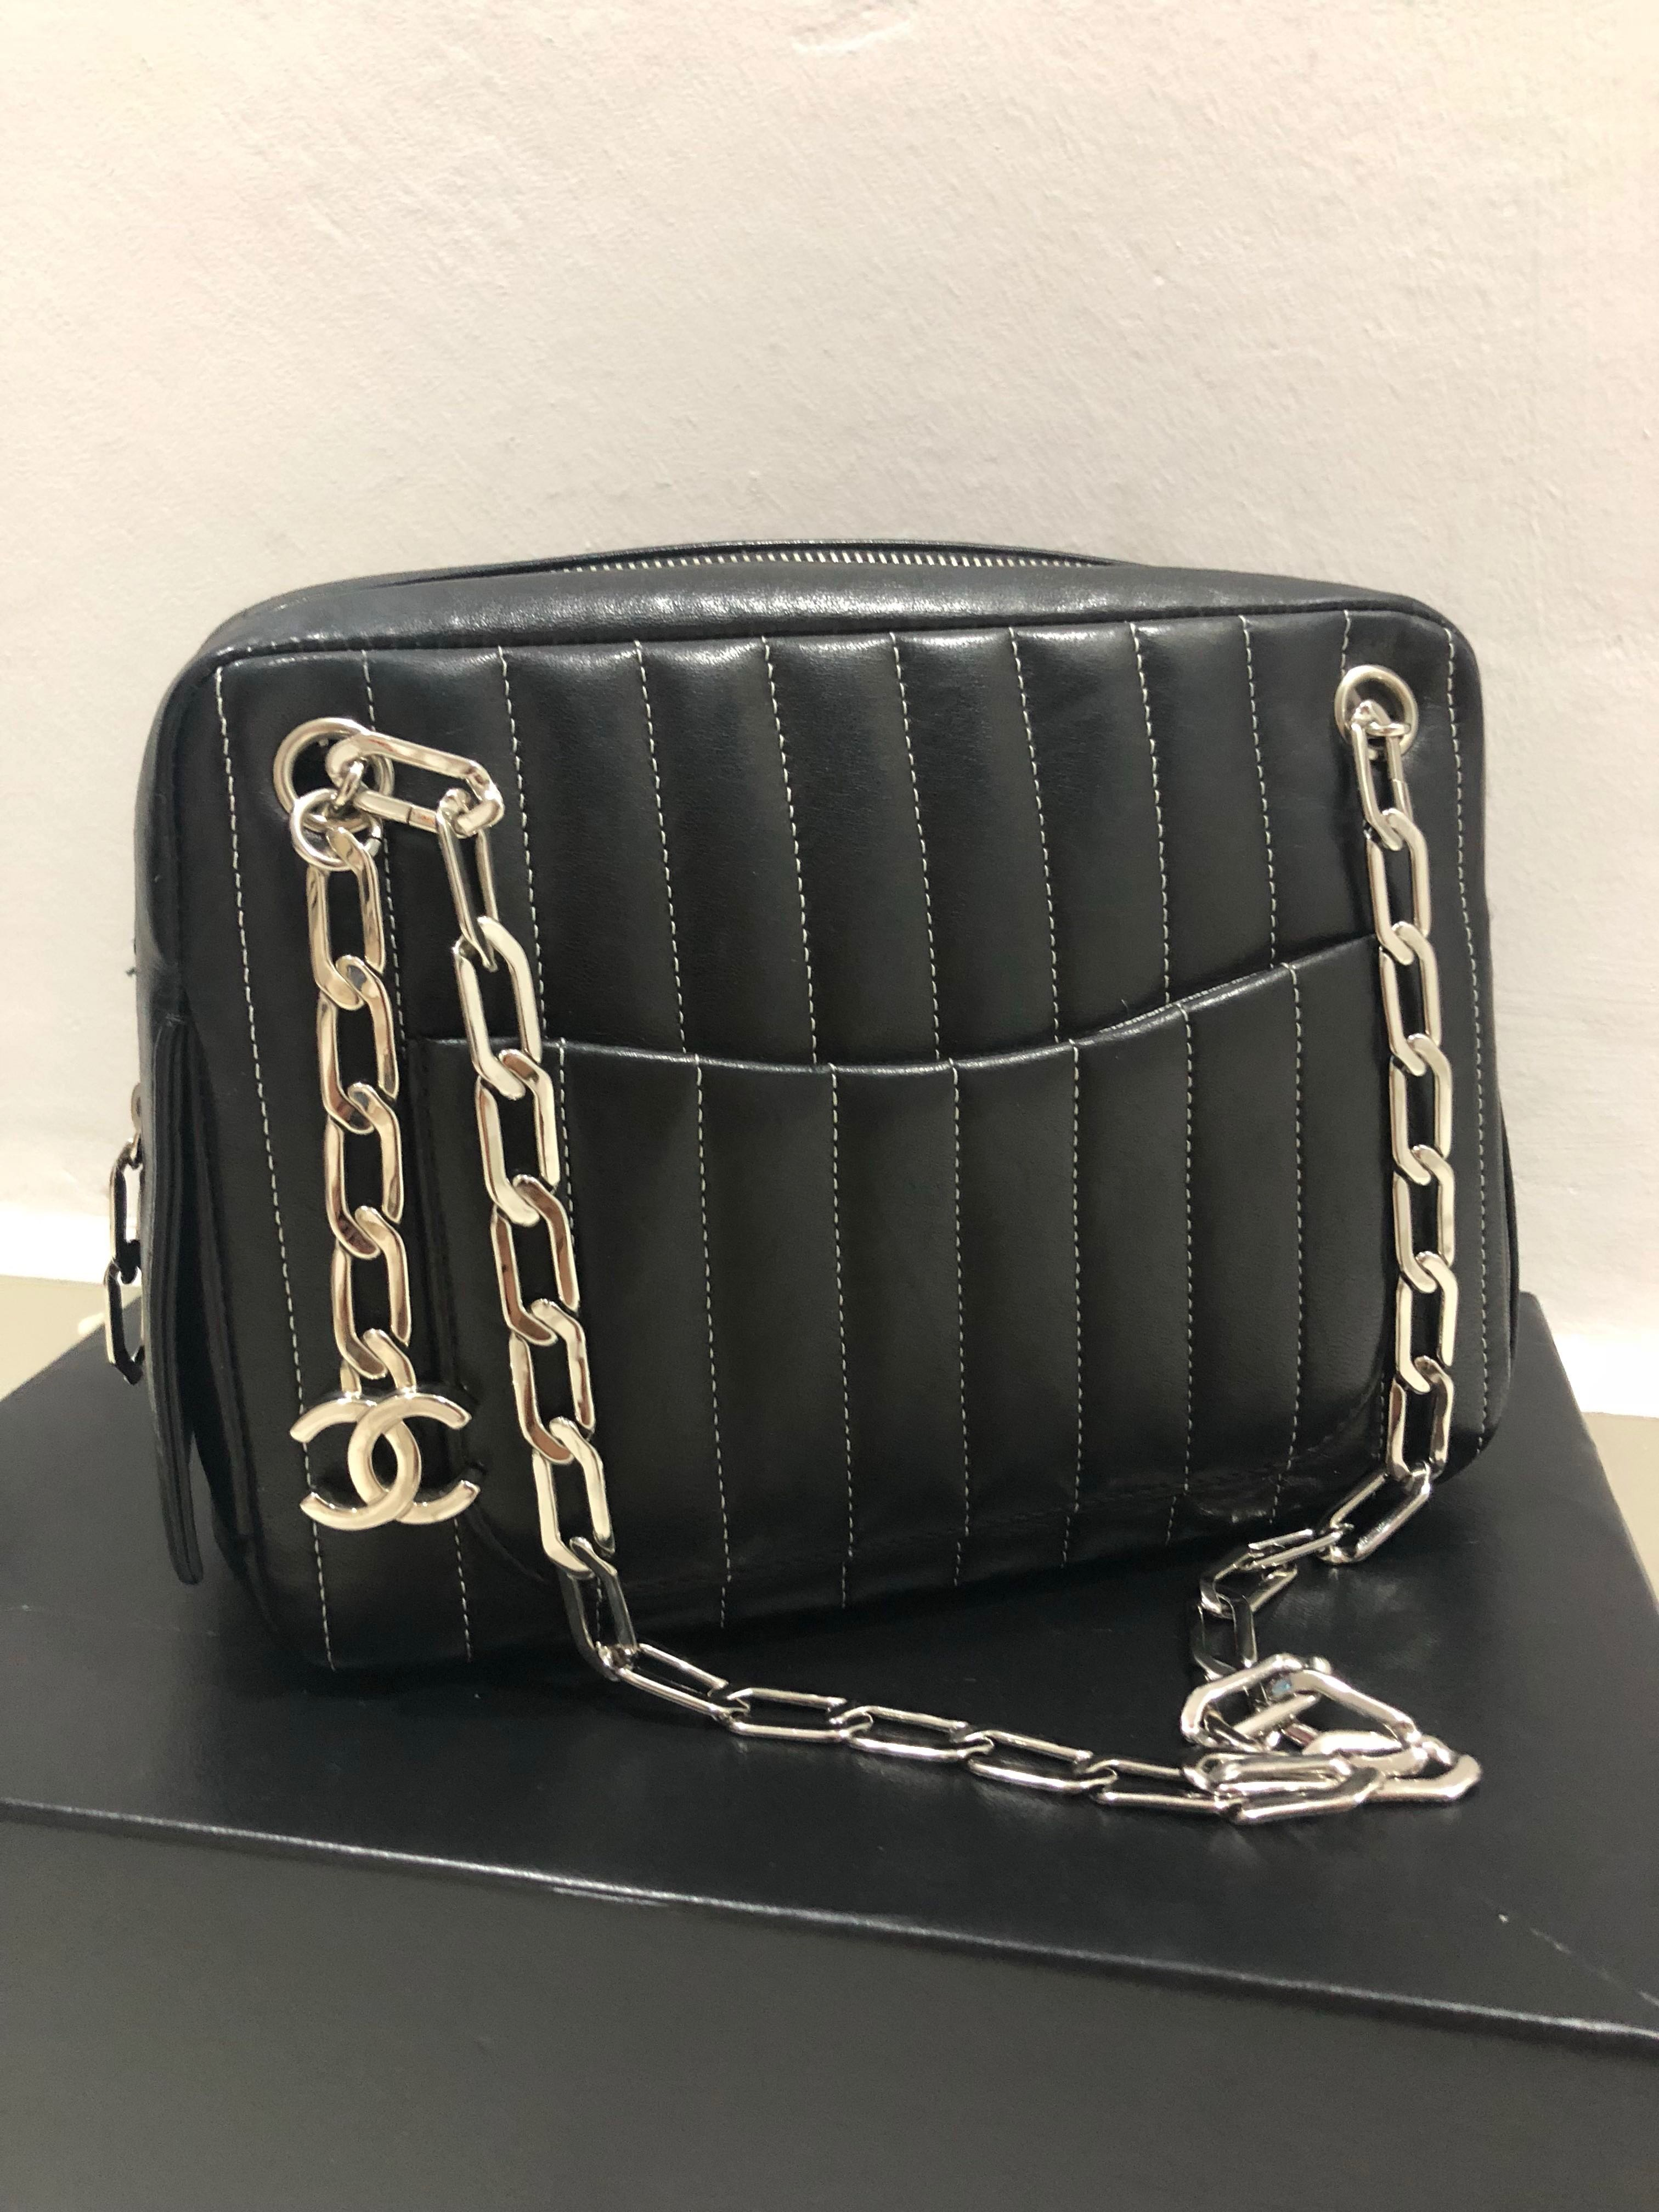 7c9d62f7d388 Chanel series #10, Luxury, Bags & Wallets, Handbags on Carousell